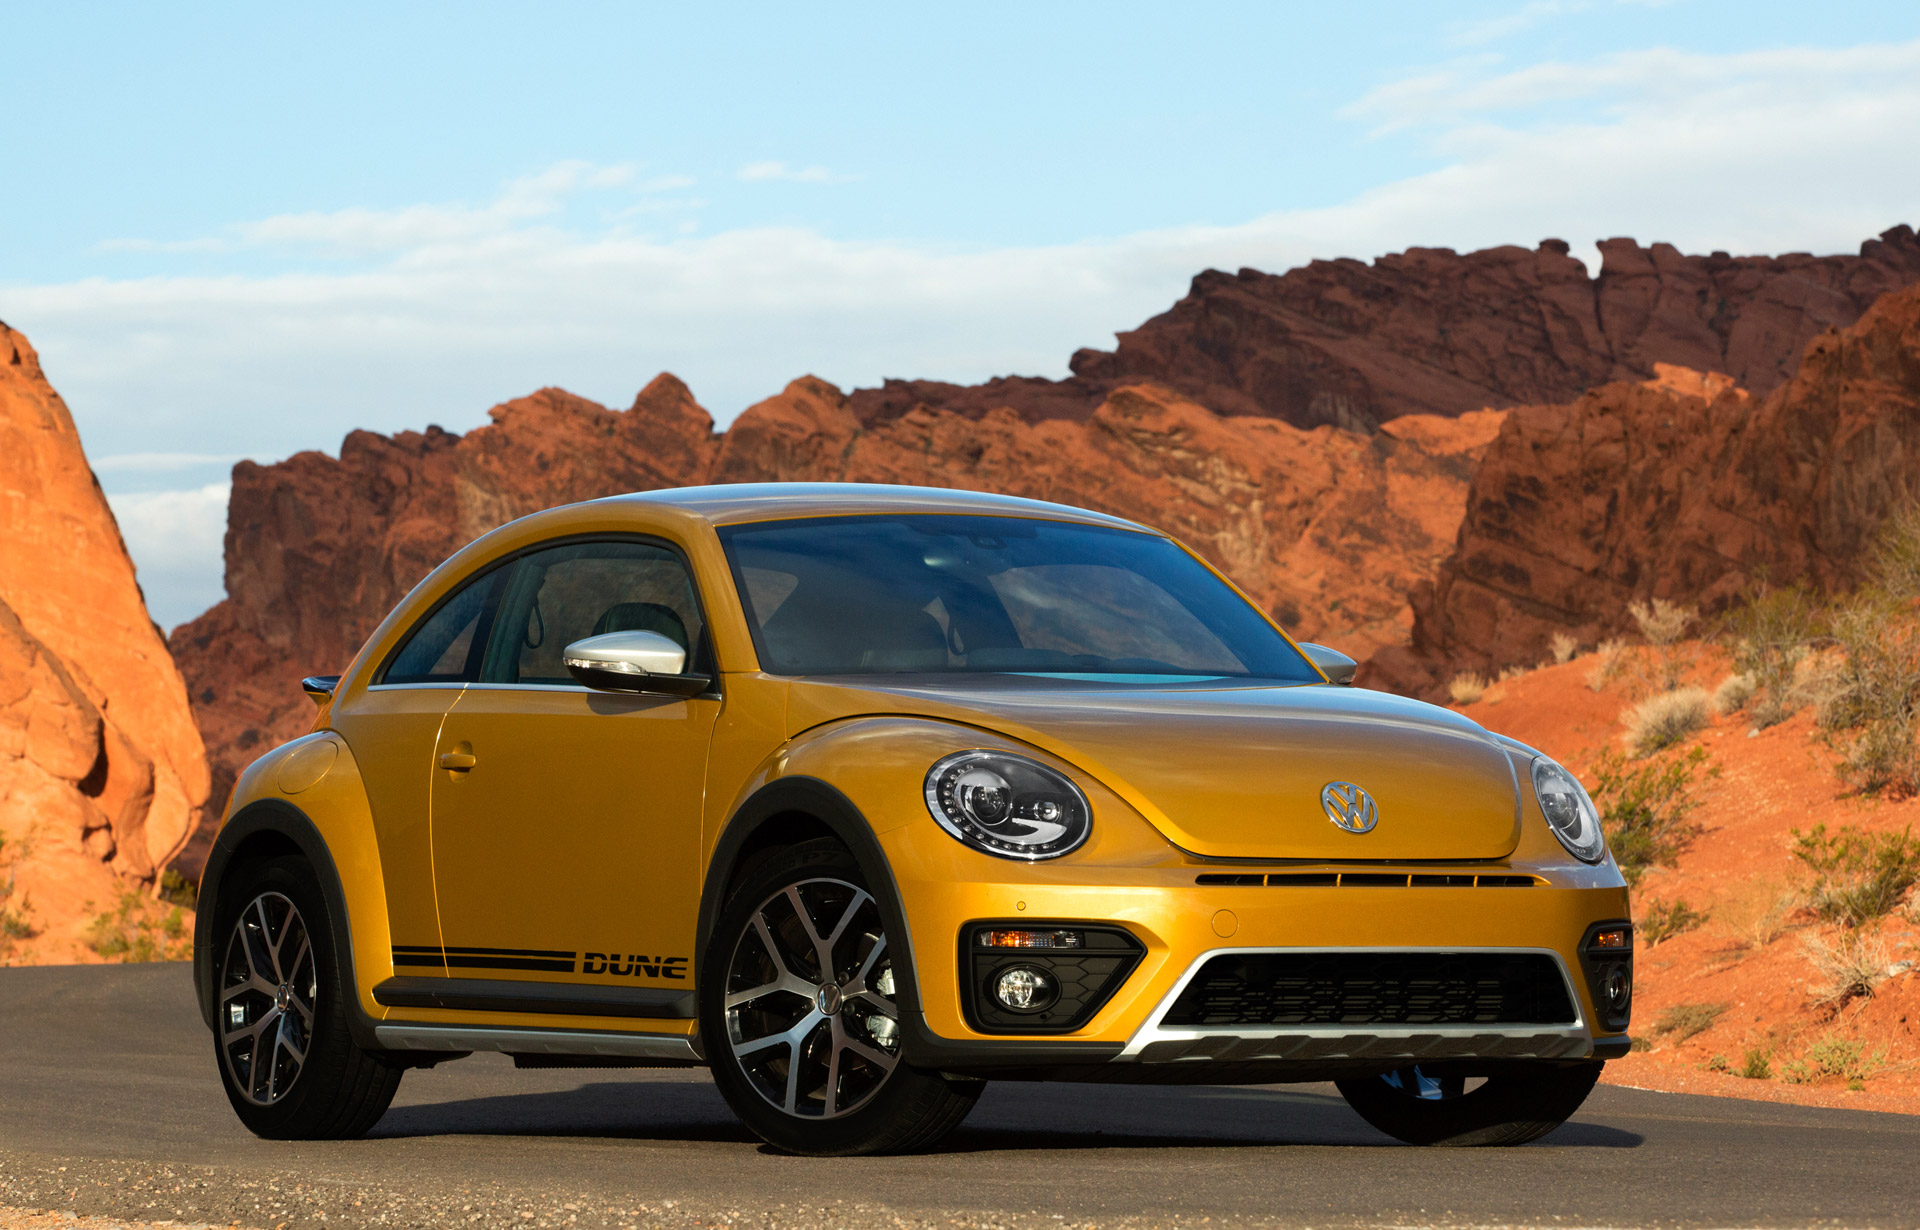 2016 Dodge Ram Reviews >> 2016 Volkswagen Beetle (VW) Review, Ratings, Specs, Prices, and Photos - The Car Connection